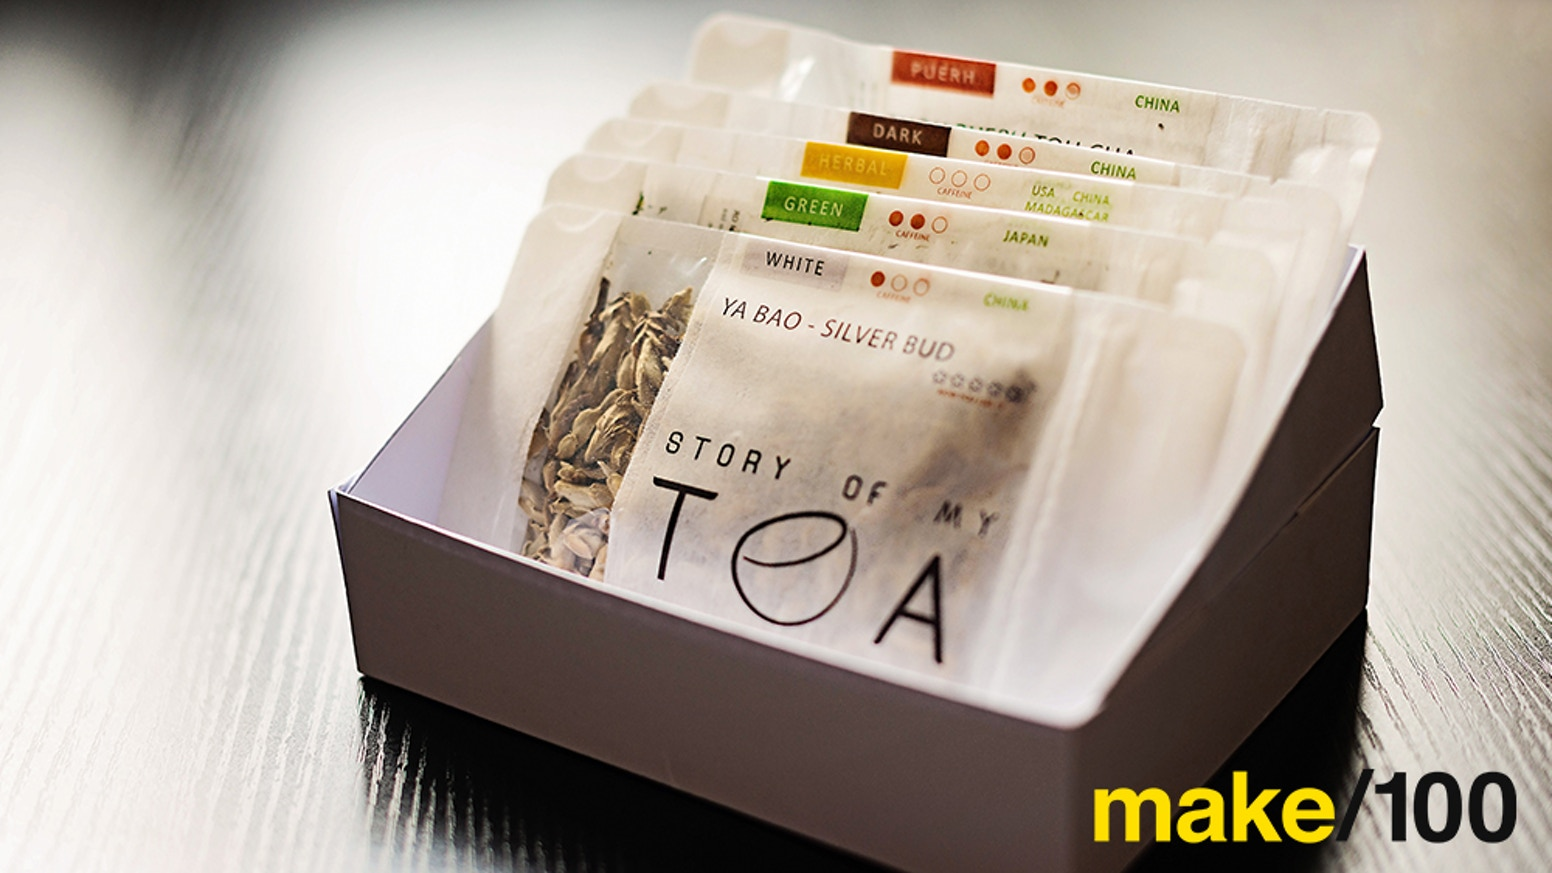 A monthly tea subscription with 60 amazing teas a year, stories of the teas on your smartphone, and an app to record your exploration.